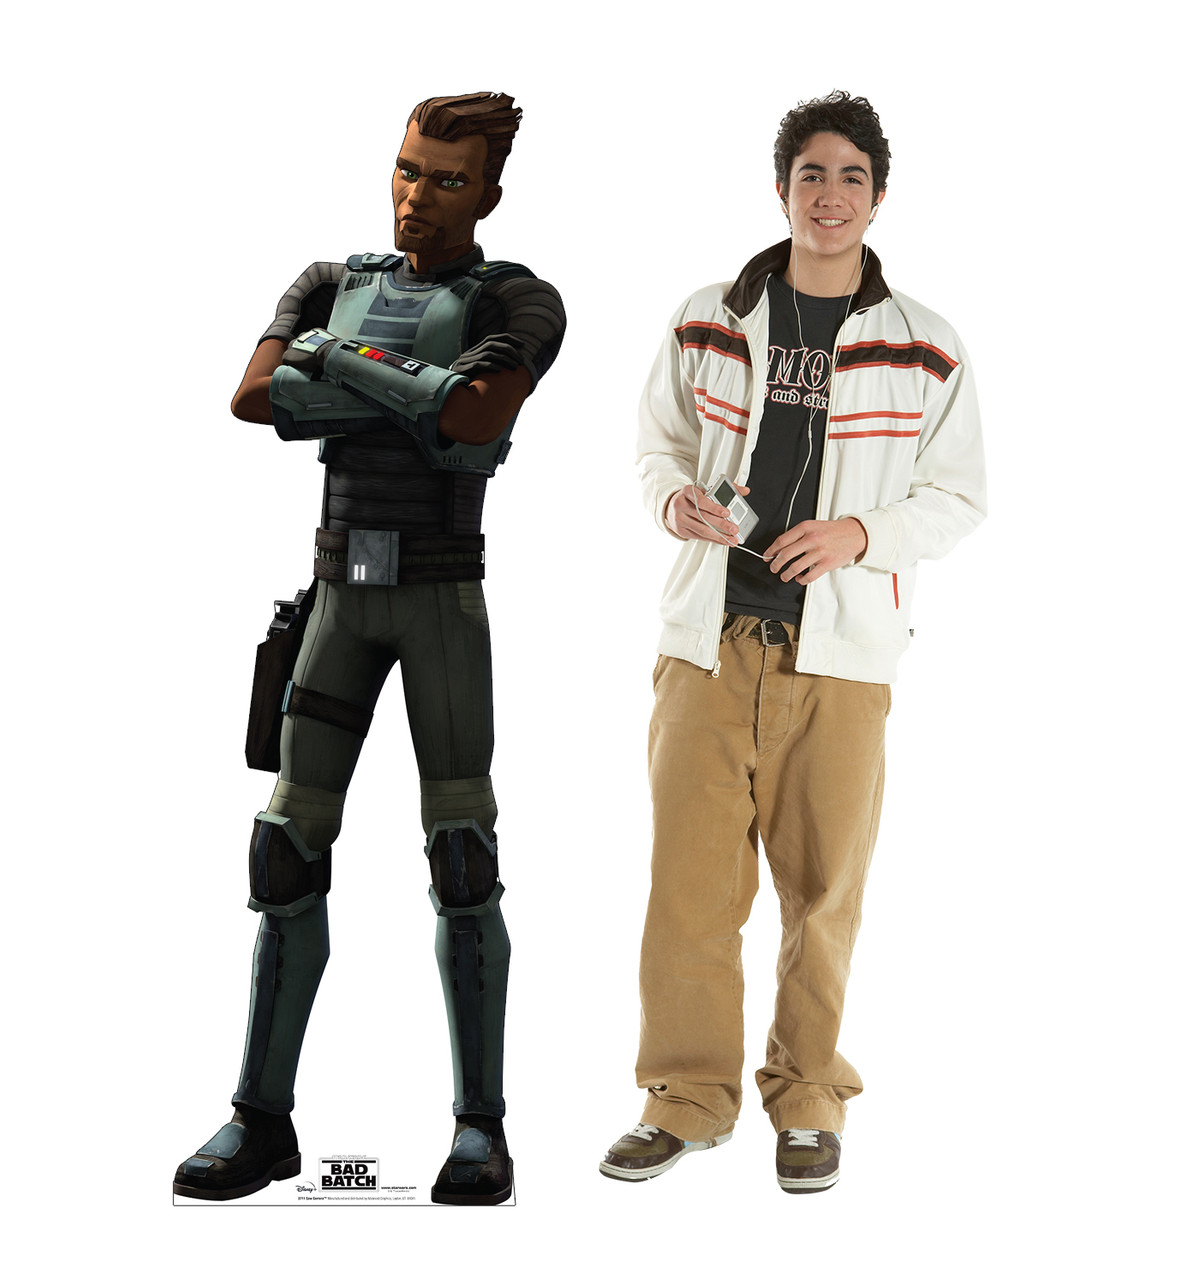 Life-size cardboard standee of Saw Gerrera from The Bad Batch on Disney+ with model.